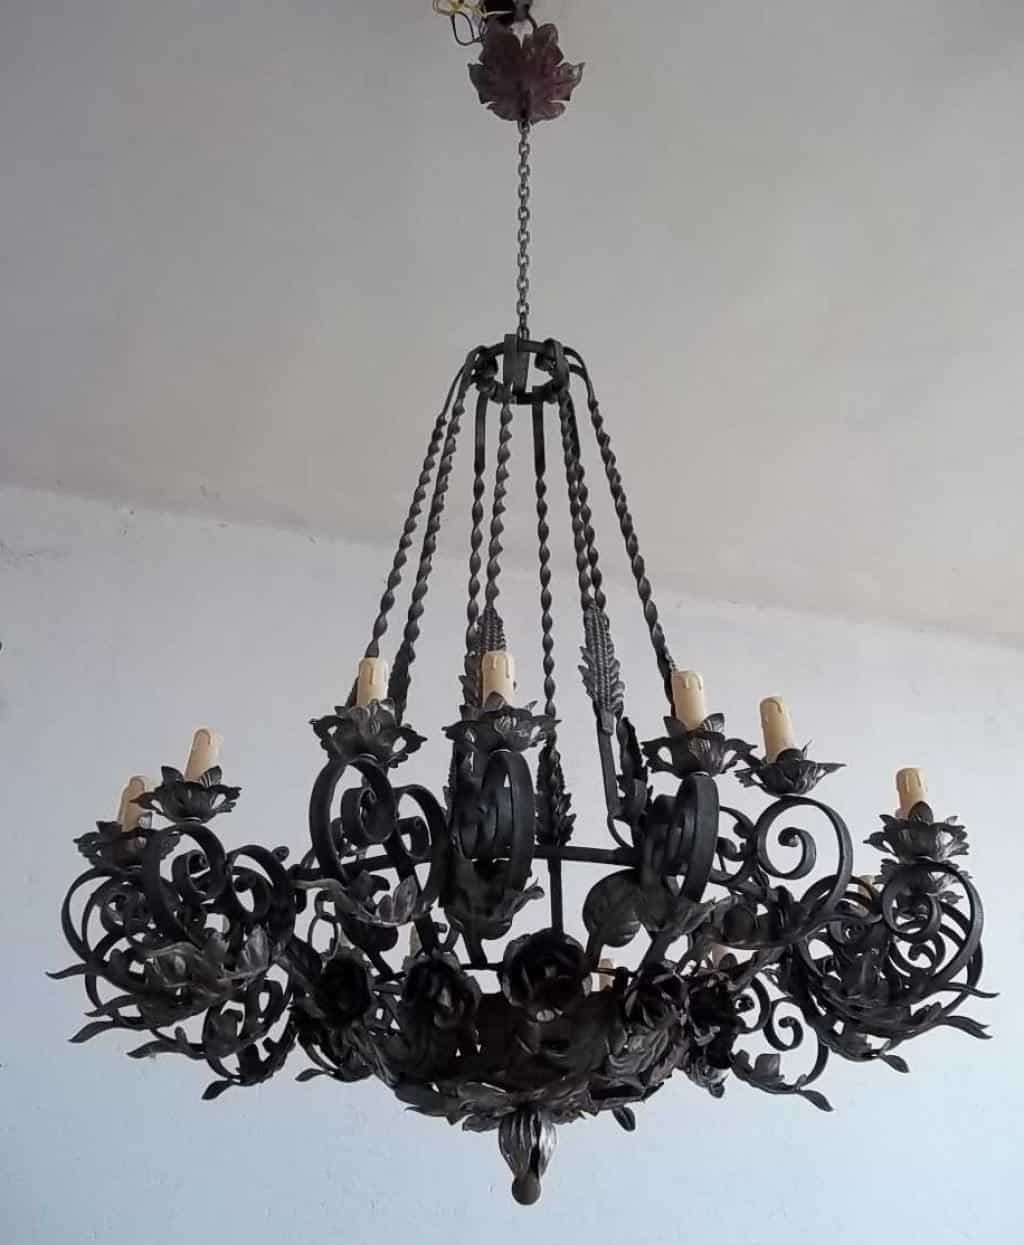 Wrought Iron Chandelier With Most Current Black Vintage Wrought Iron Chandelier Hung In The White Ceiling (View 12 of 15)